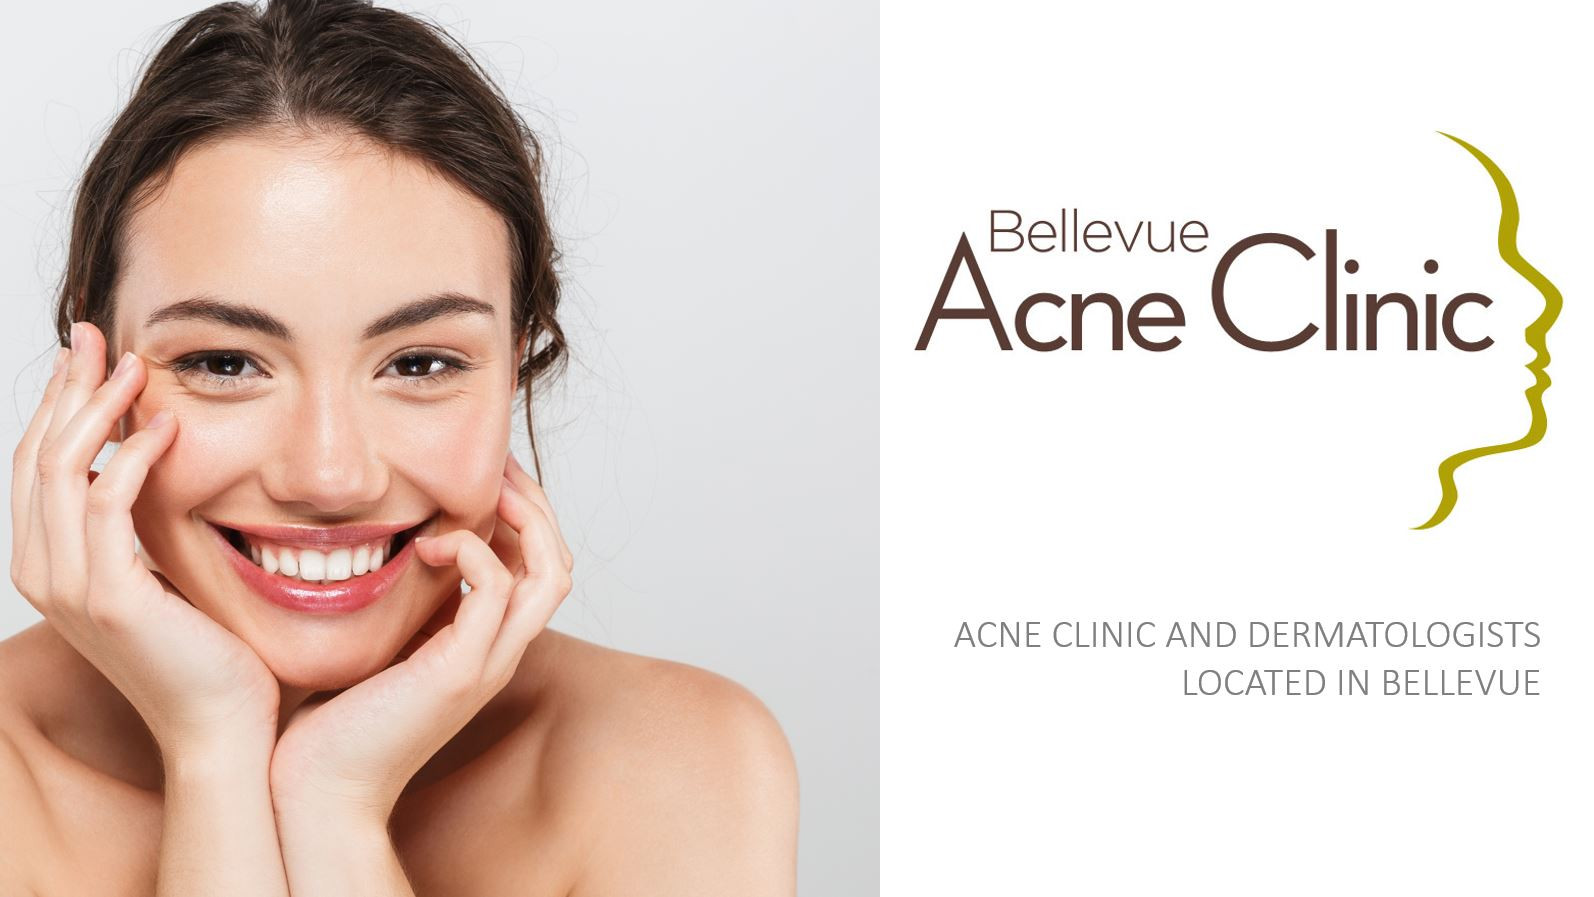 Bellevue Acne Clinic | Home | Bellevue's Only Acne Specialists